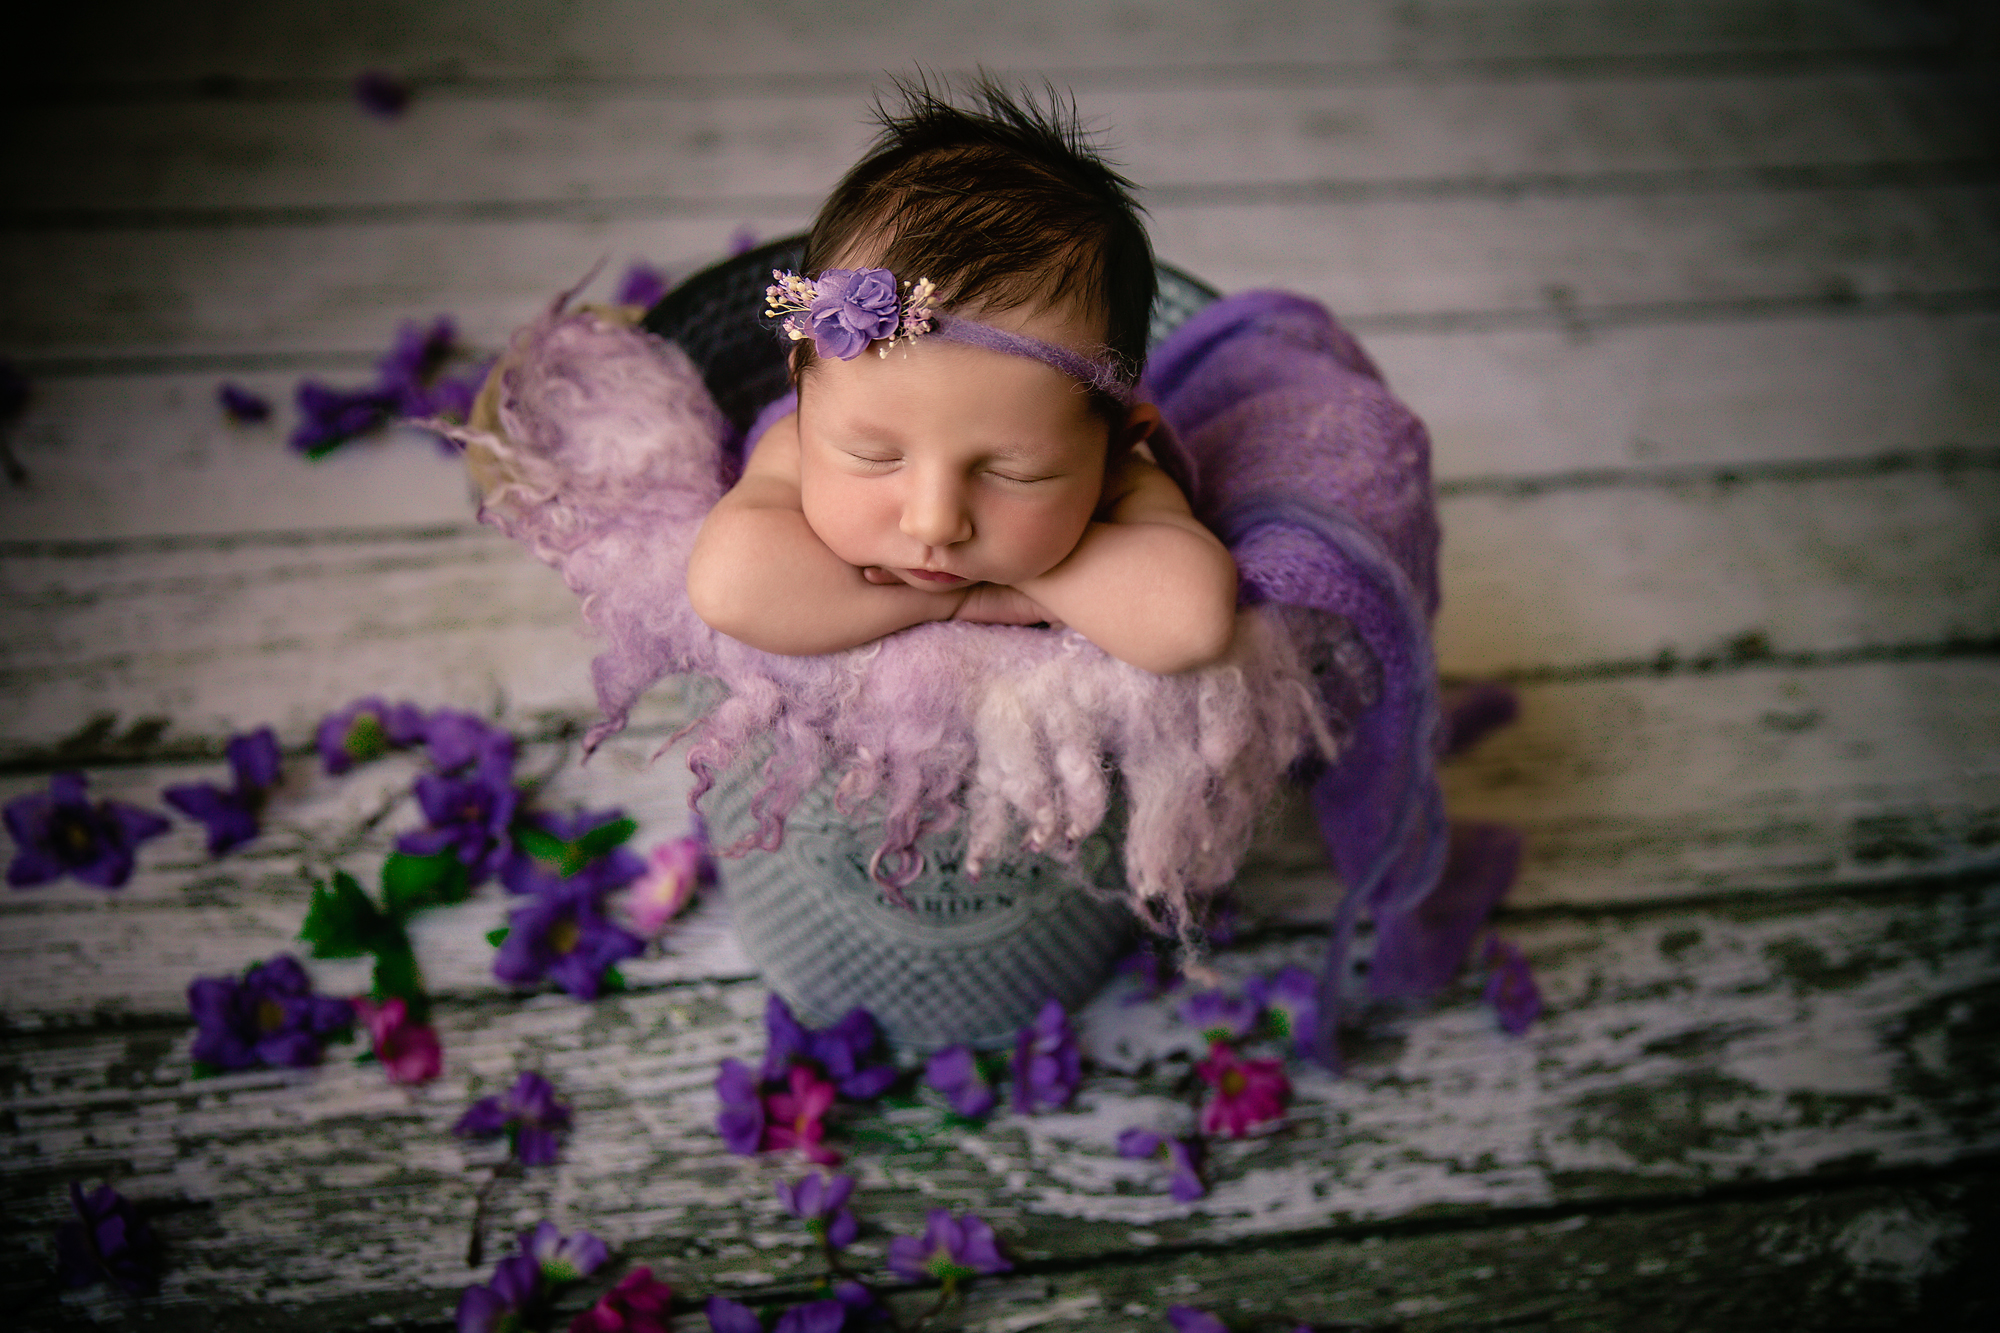 Newborn baby girl is posed in a bucket. Newborn Photoshoot ideas. Calgary and Airdrie newborn baby photographer - Milashka Photography